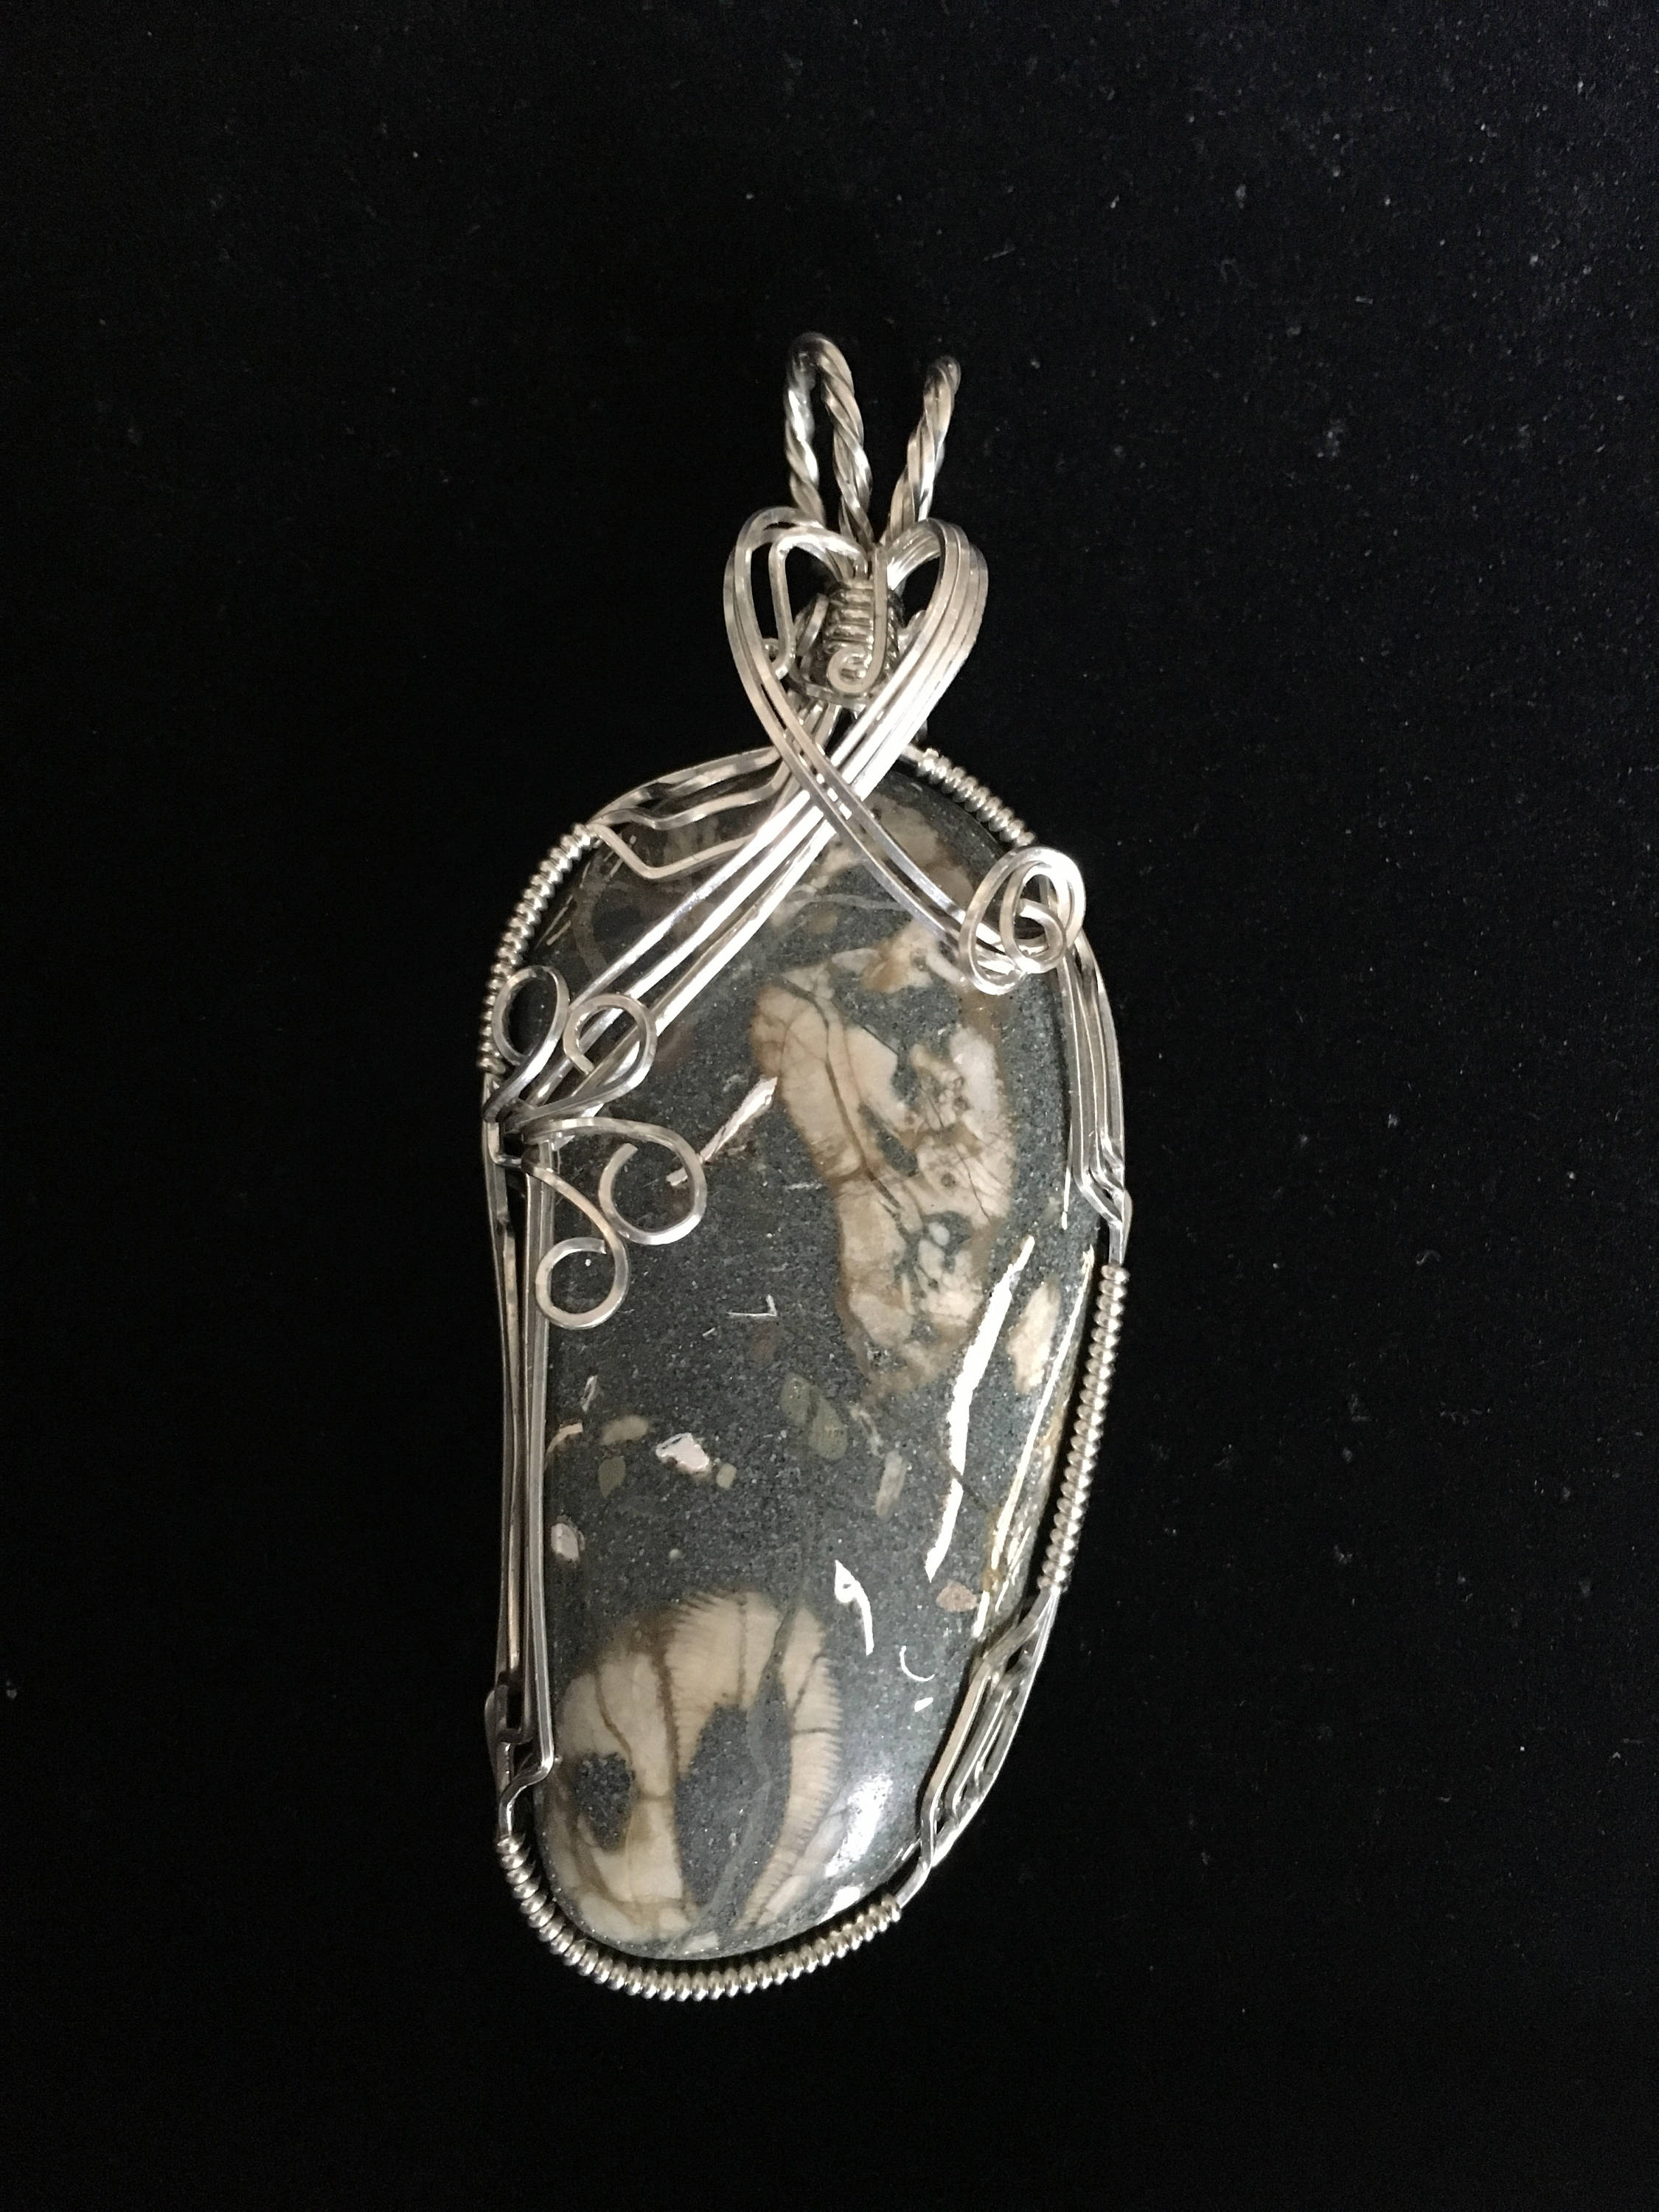 One of a kind Large Sterling Silver Wrapped Ocean Fossil Pendant